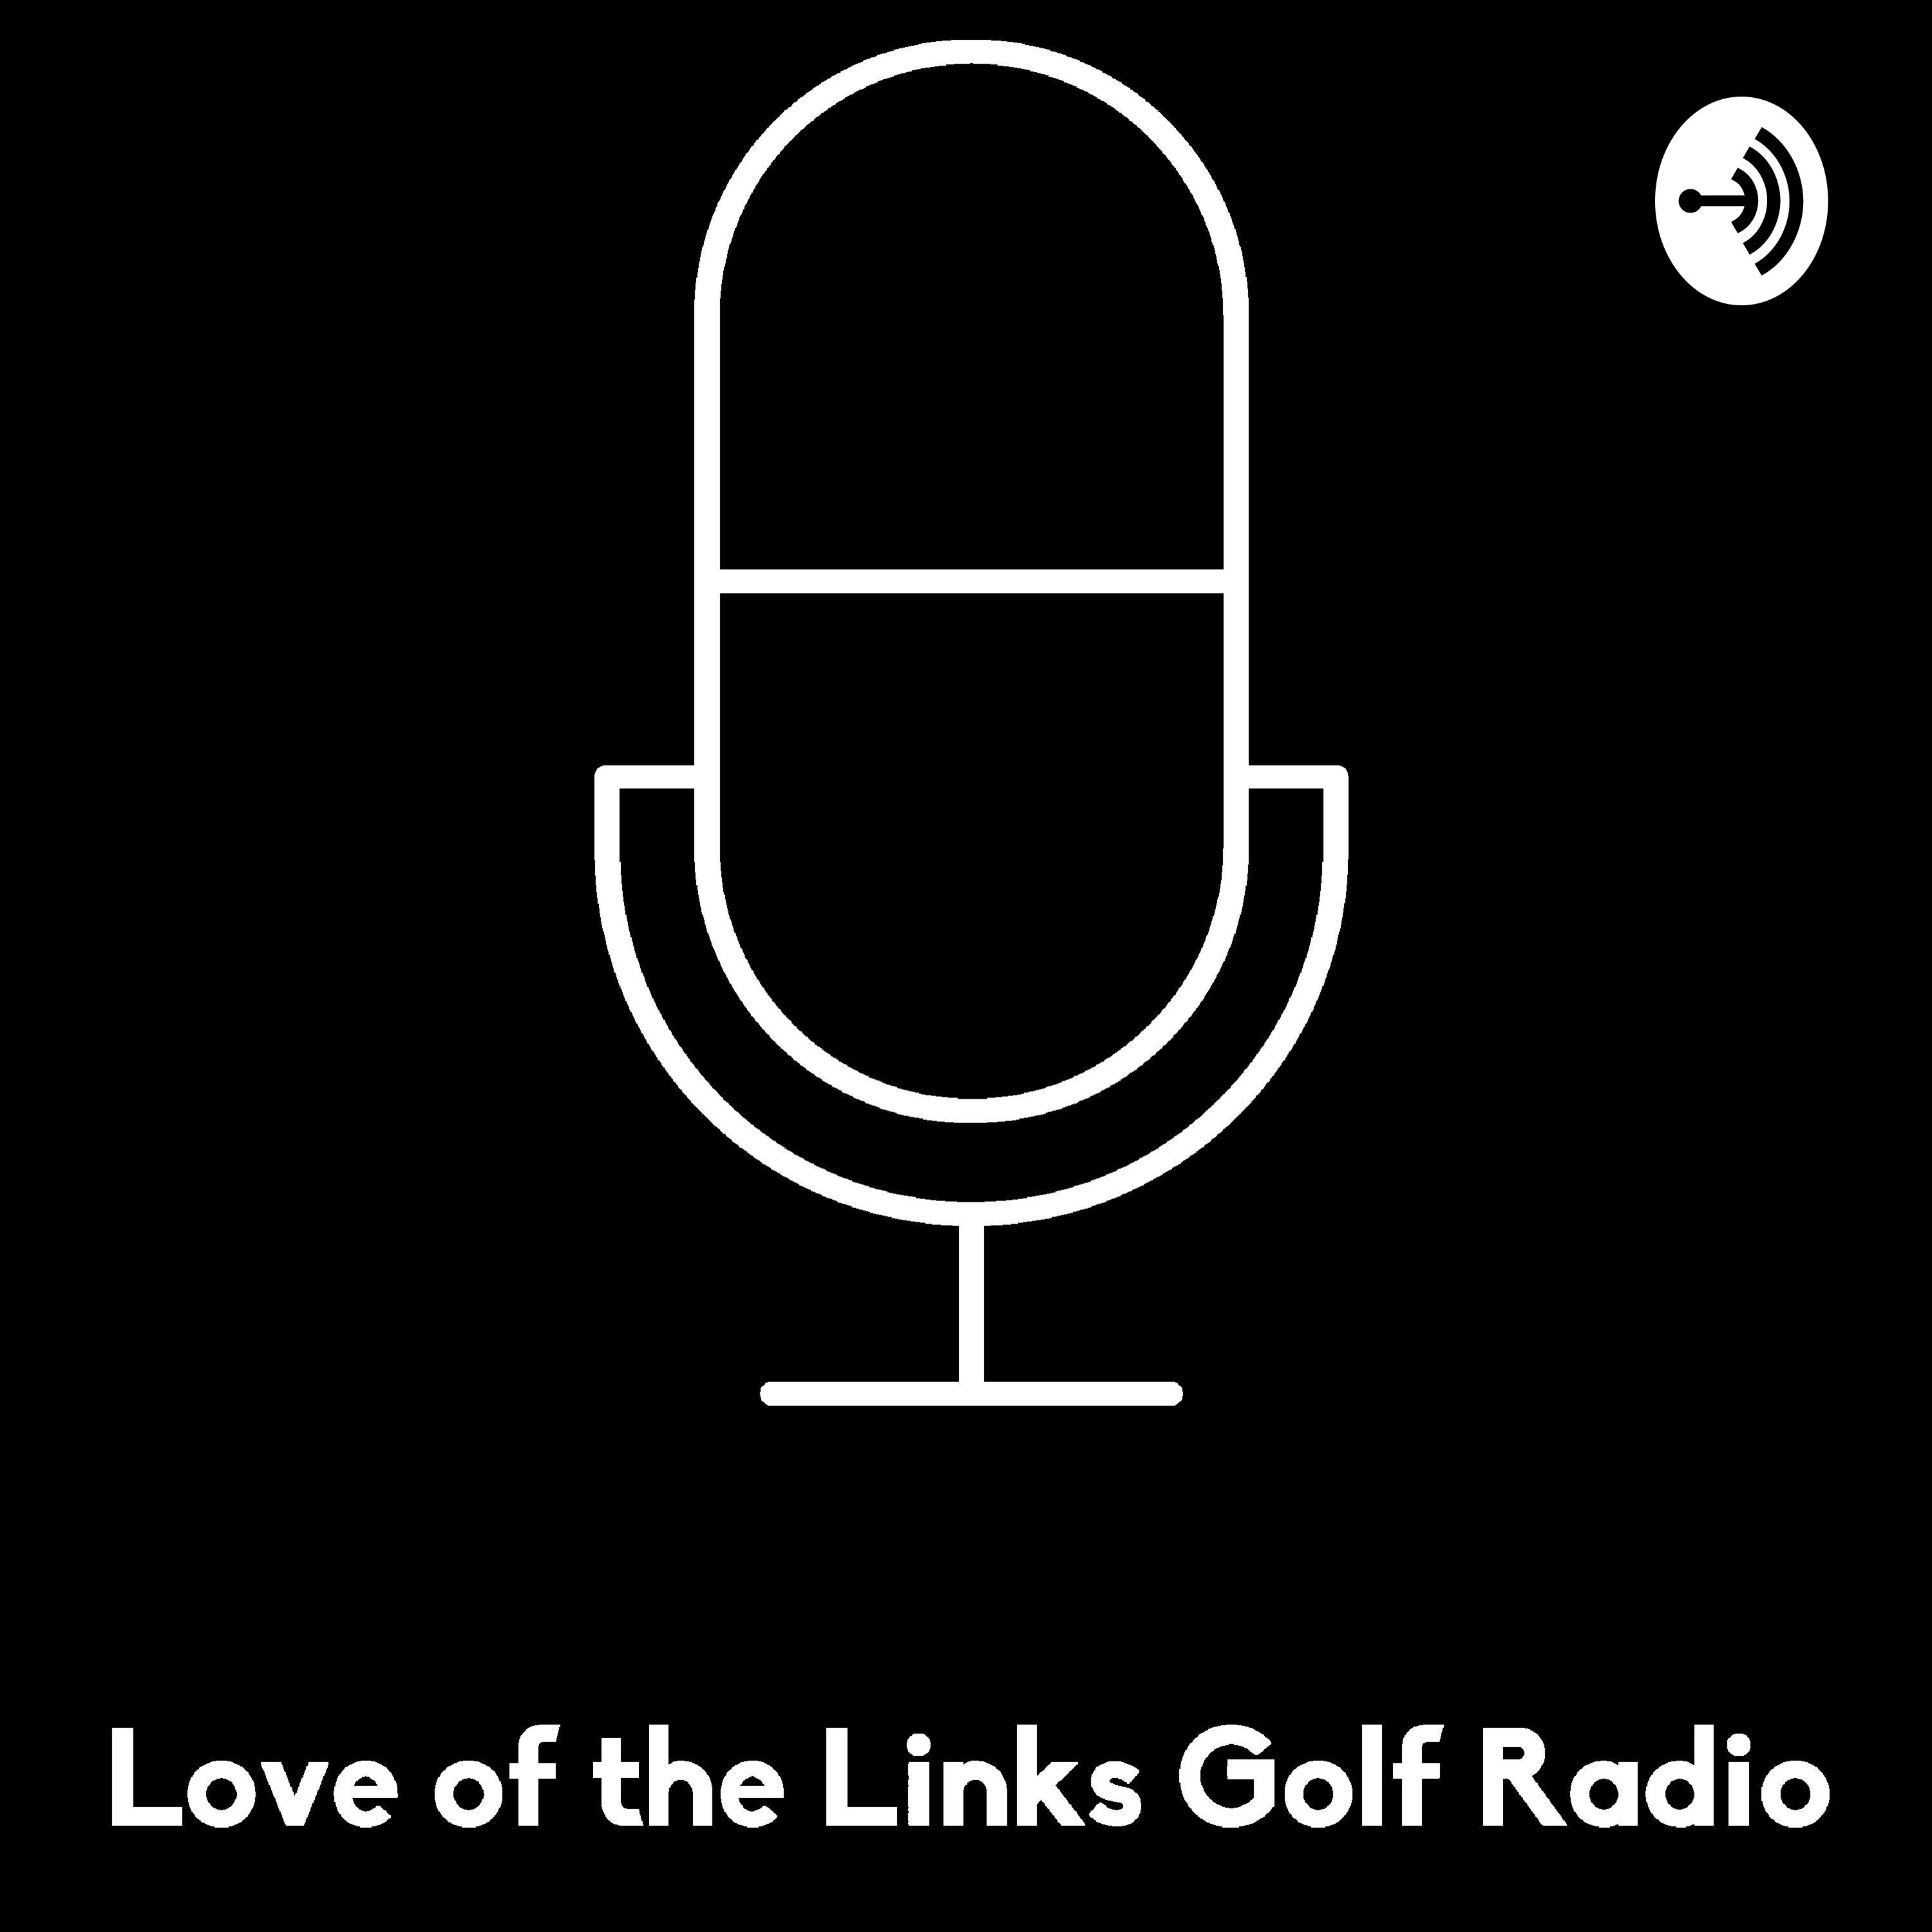 Love of the Links Golf Radio, Episode 14, for the week of March 25th (Special Edition)